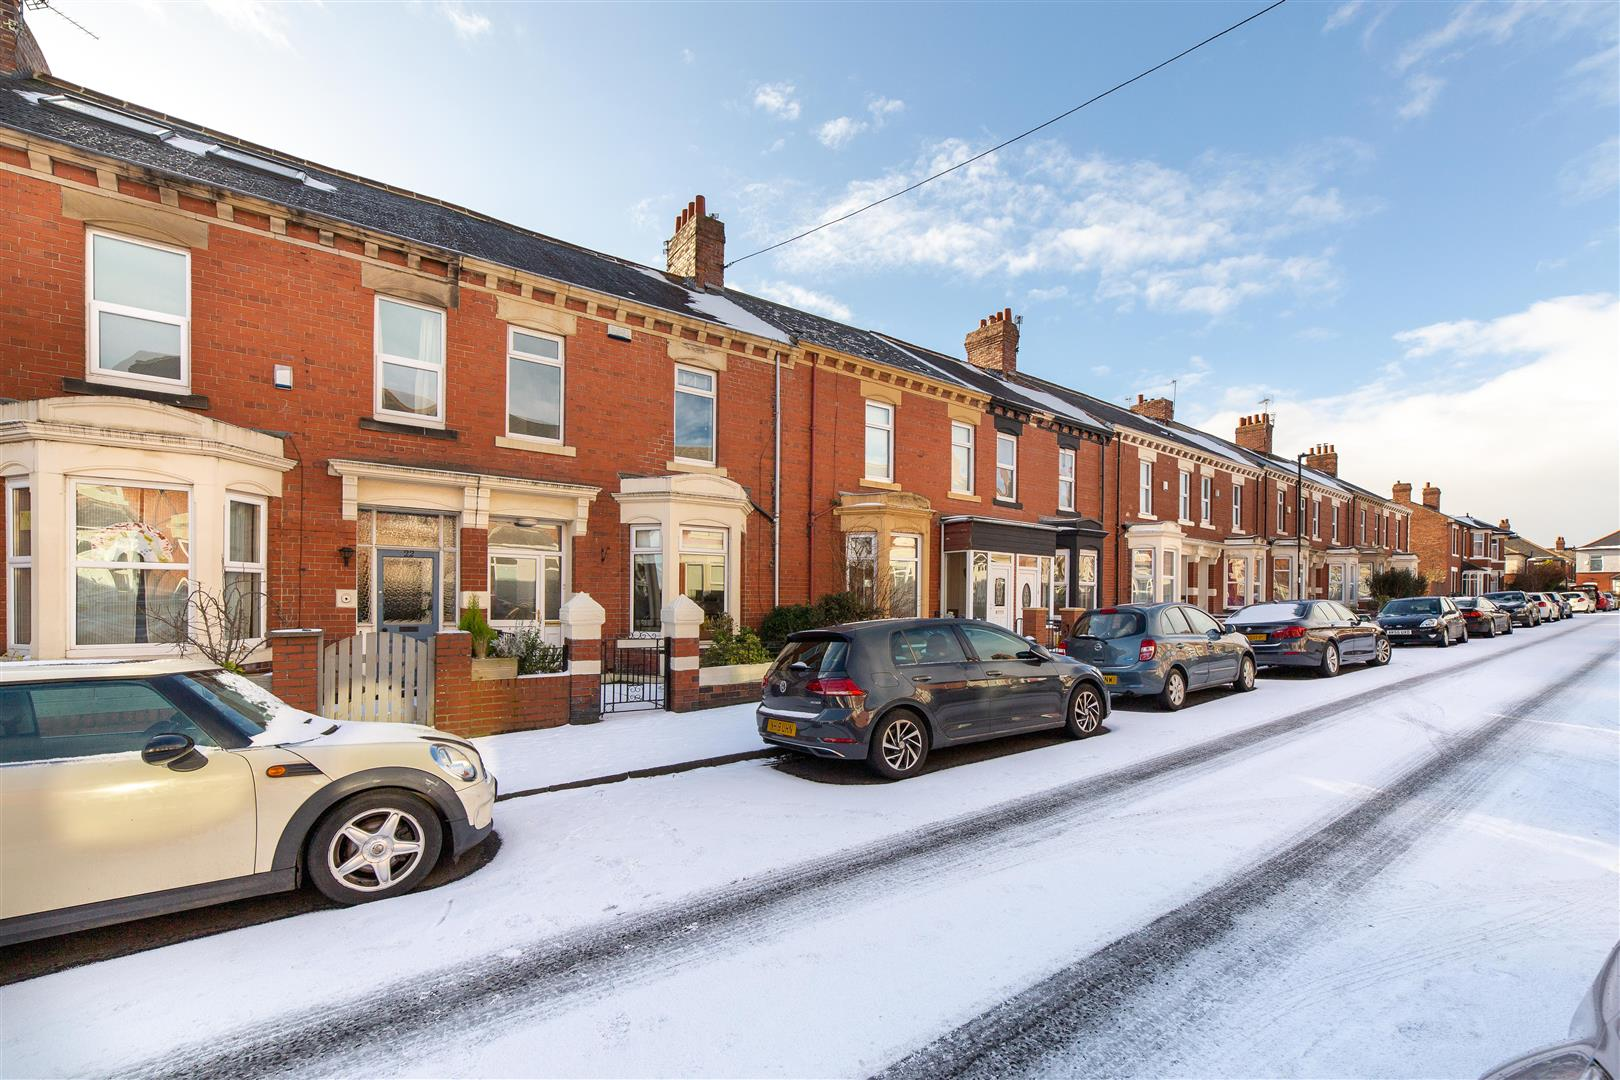 4 bed terraced house for sale in Heaton, NE6 5LR, NE6